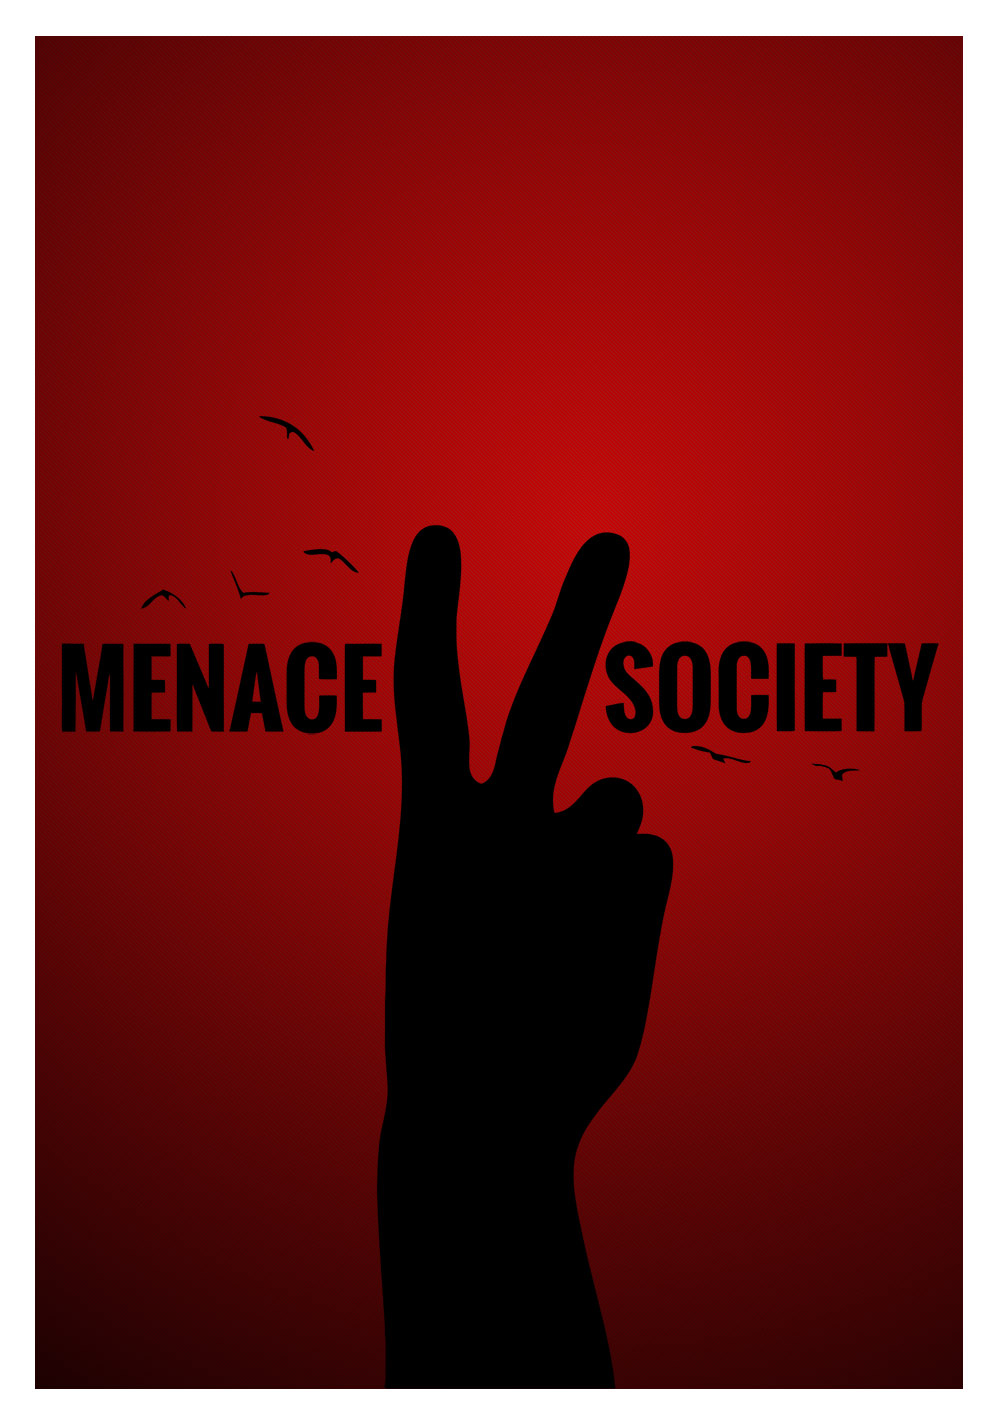 socs more of a menace to society than the greasers 25 menace to society famous quotes: maria semple: bernadette, are you done you cant honestly believe any of this nonsense people like you must create if you dont create, bernadette, you will become a menace to society paul — maria semple .